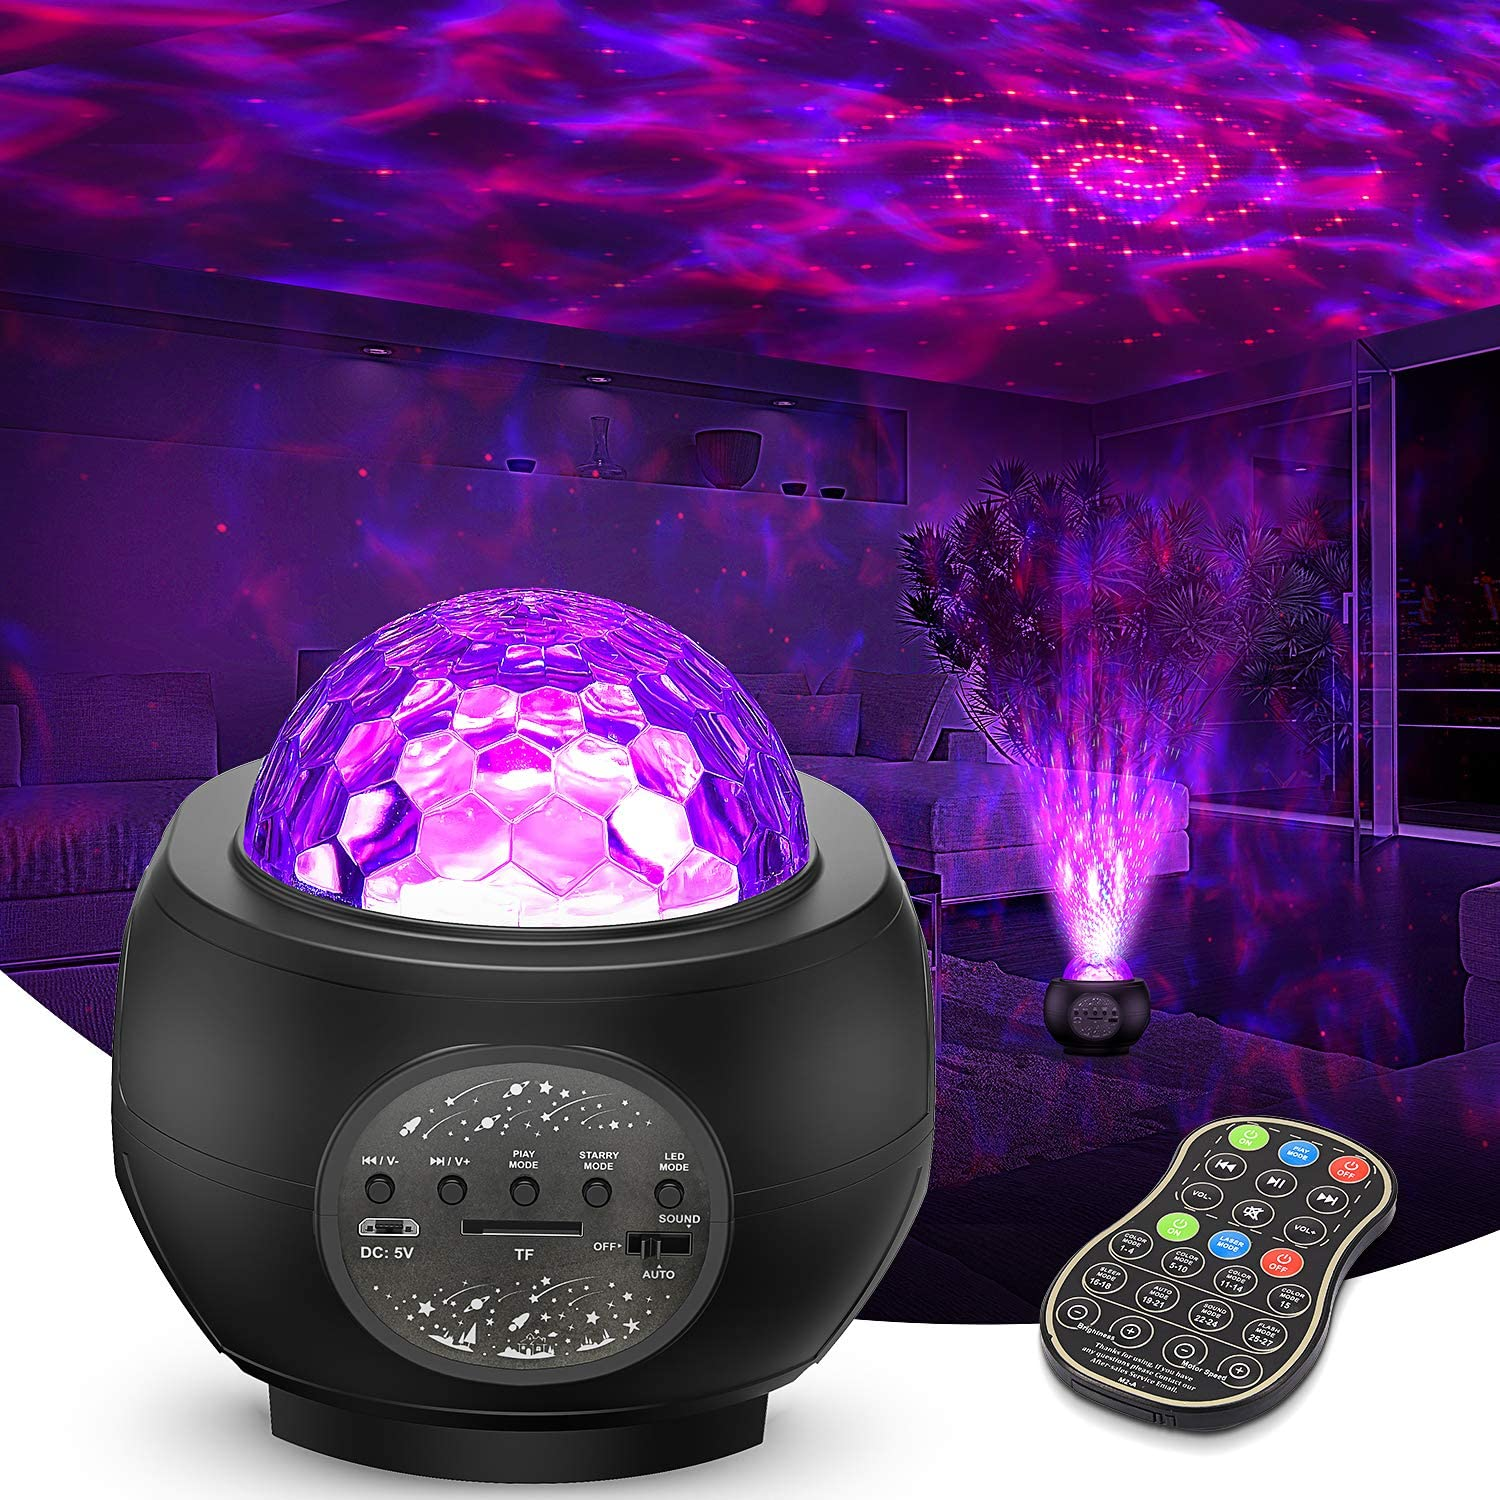 Rotating Ocean Wave Star Light Projector Bedroom Christmas Wedding Tesoky Star Projector Night Light for Kids Galaxy Light Projector with Remote Control and Bluetooth Music Speaker